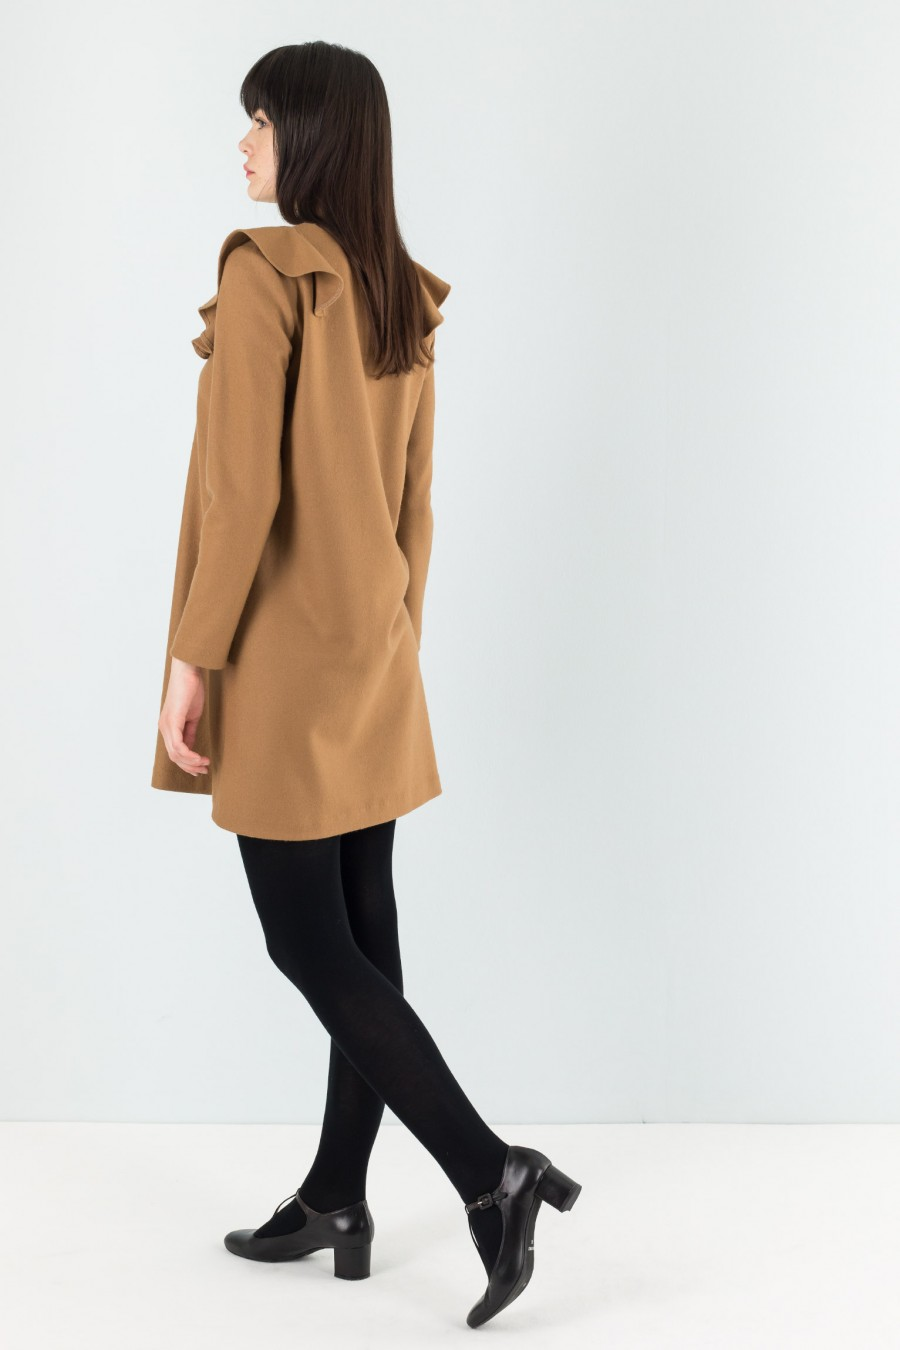 Lazzari wool brown dress